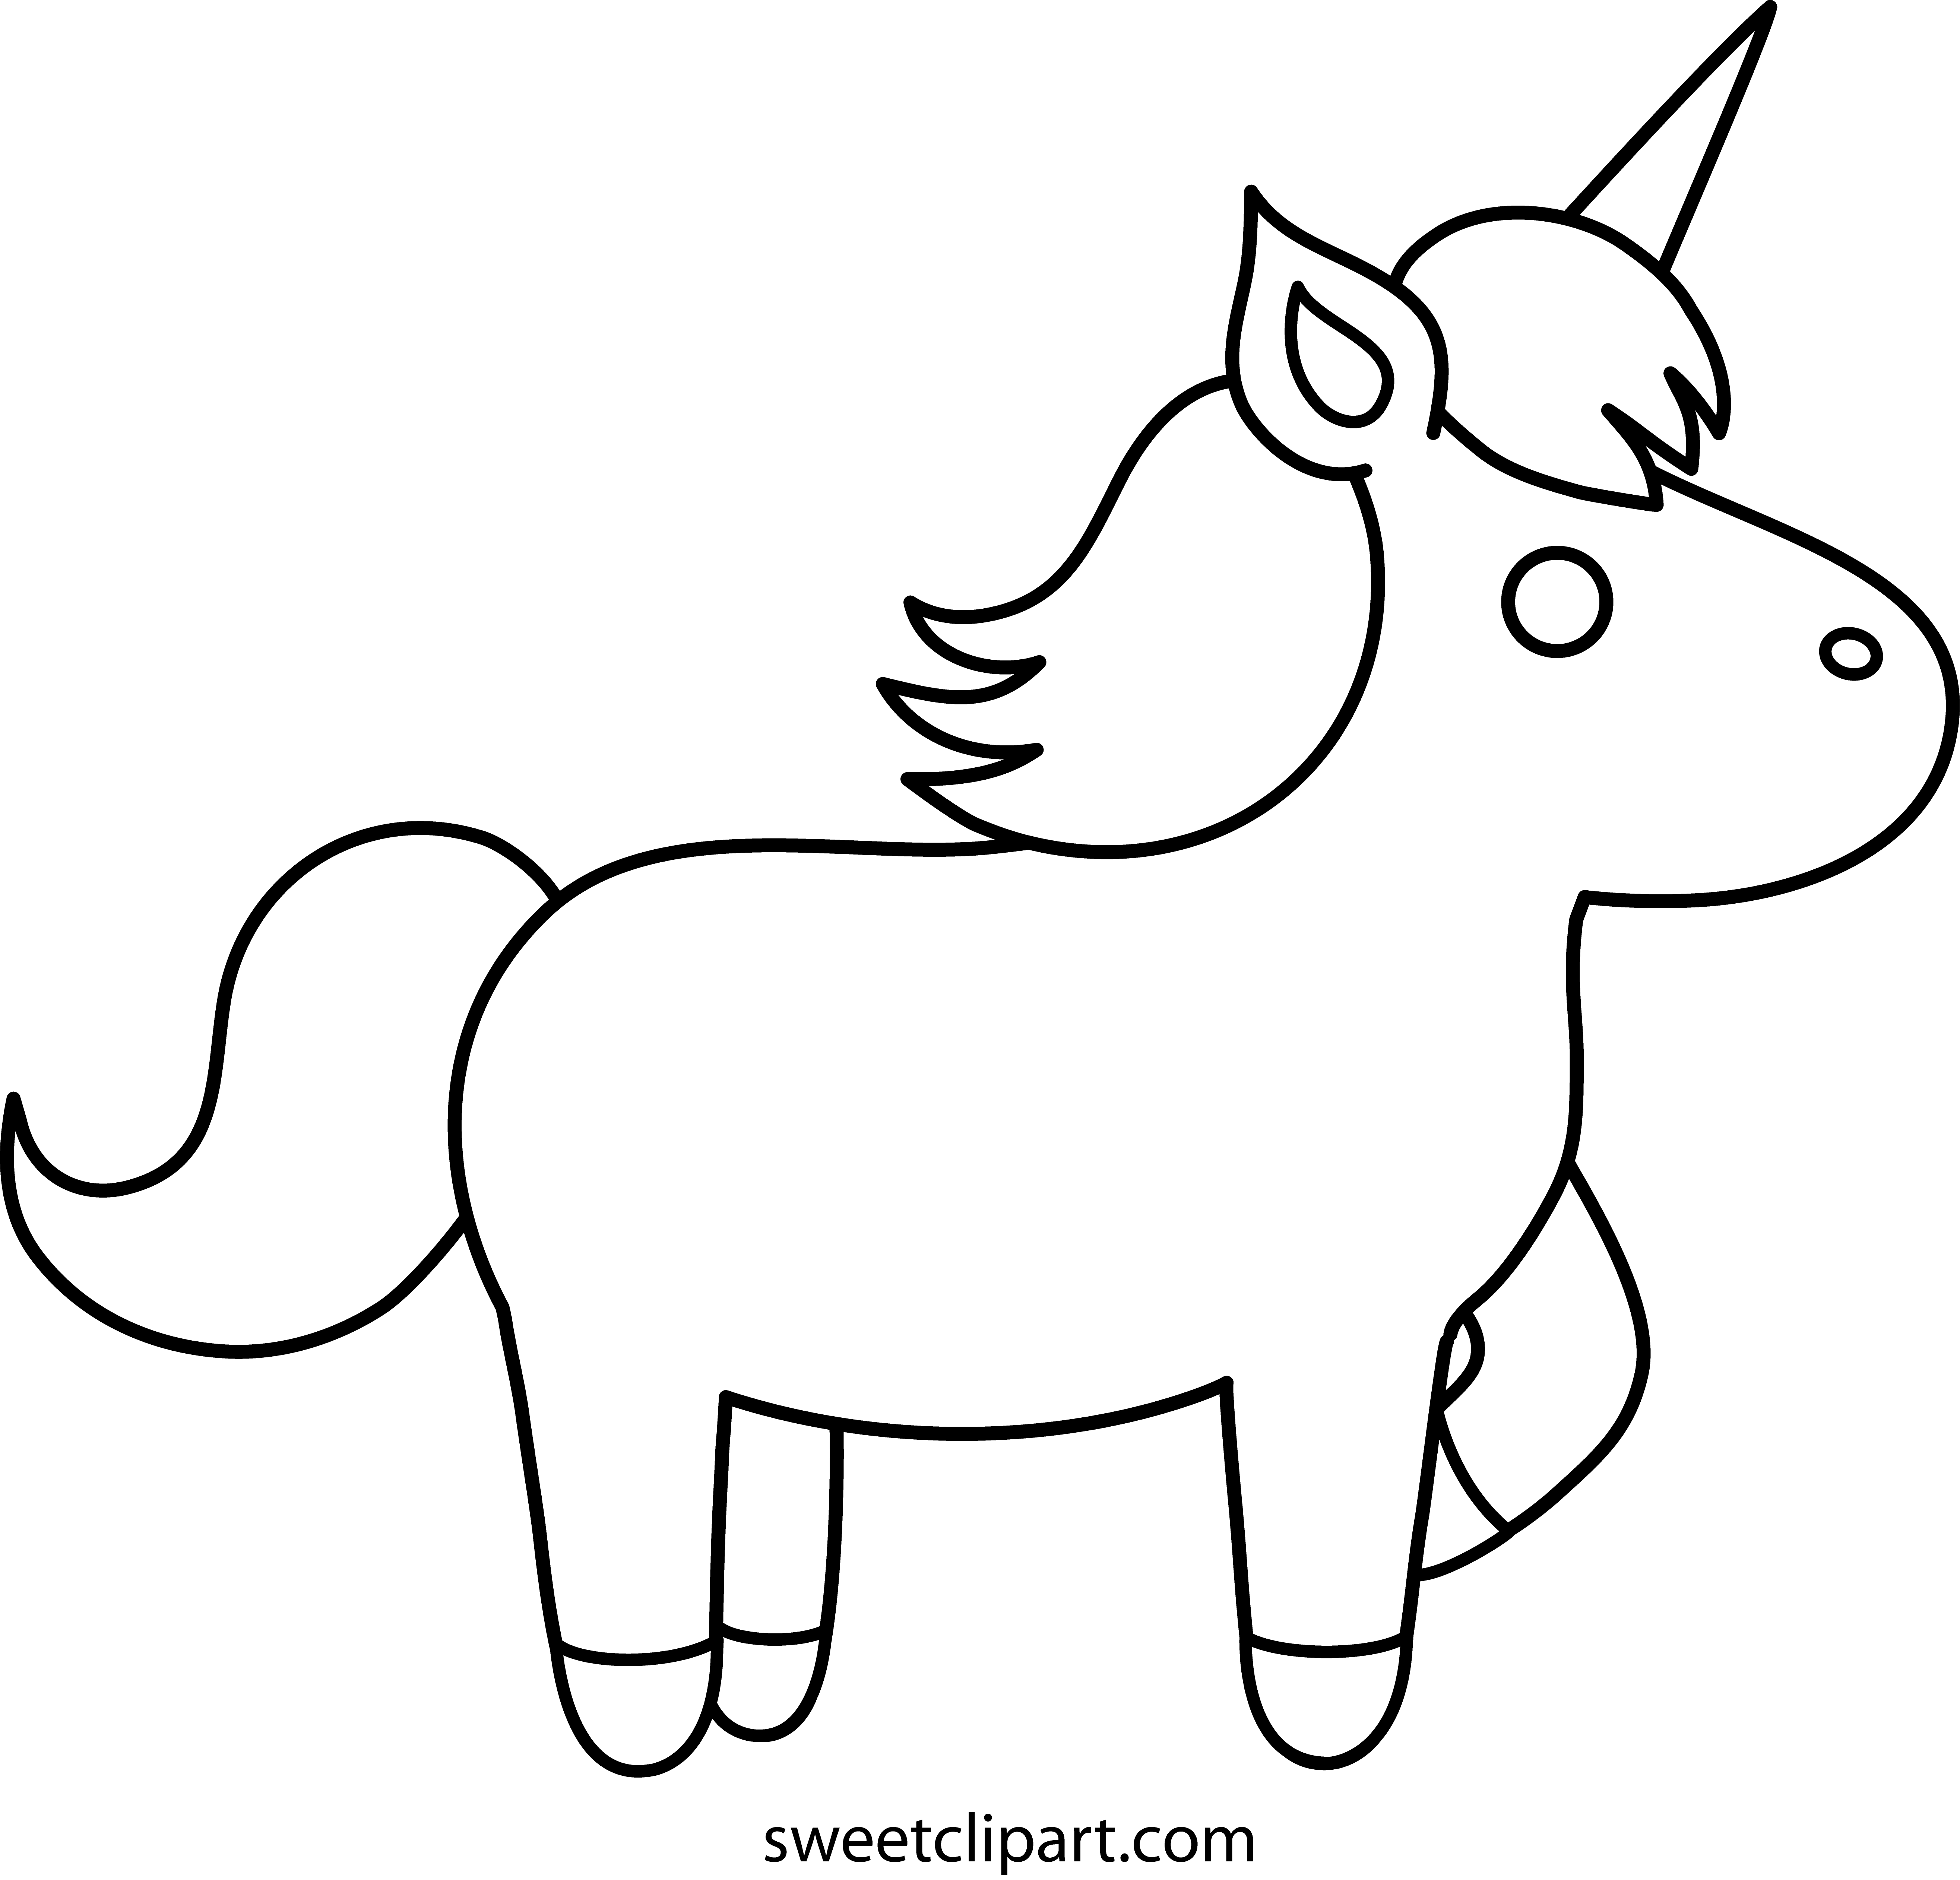 Clipart unicorn outline. Easy coloring pages simple